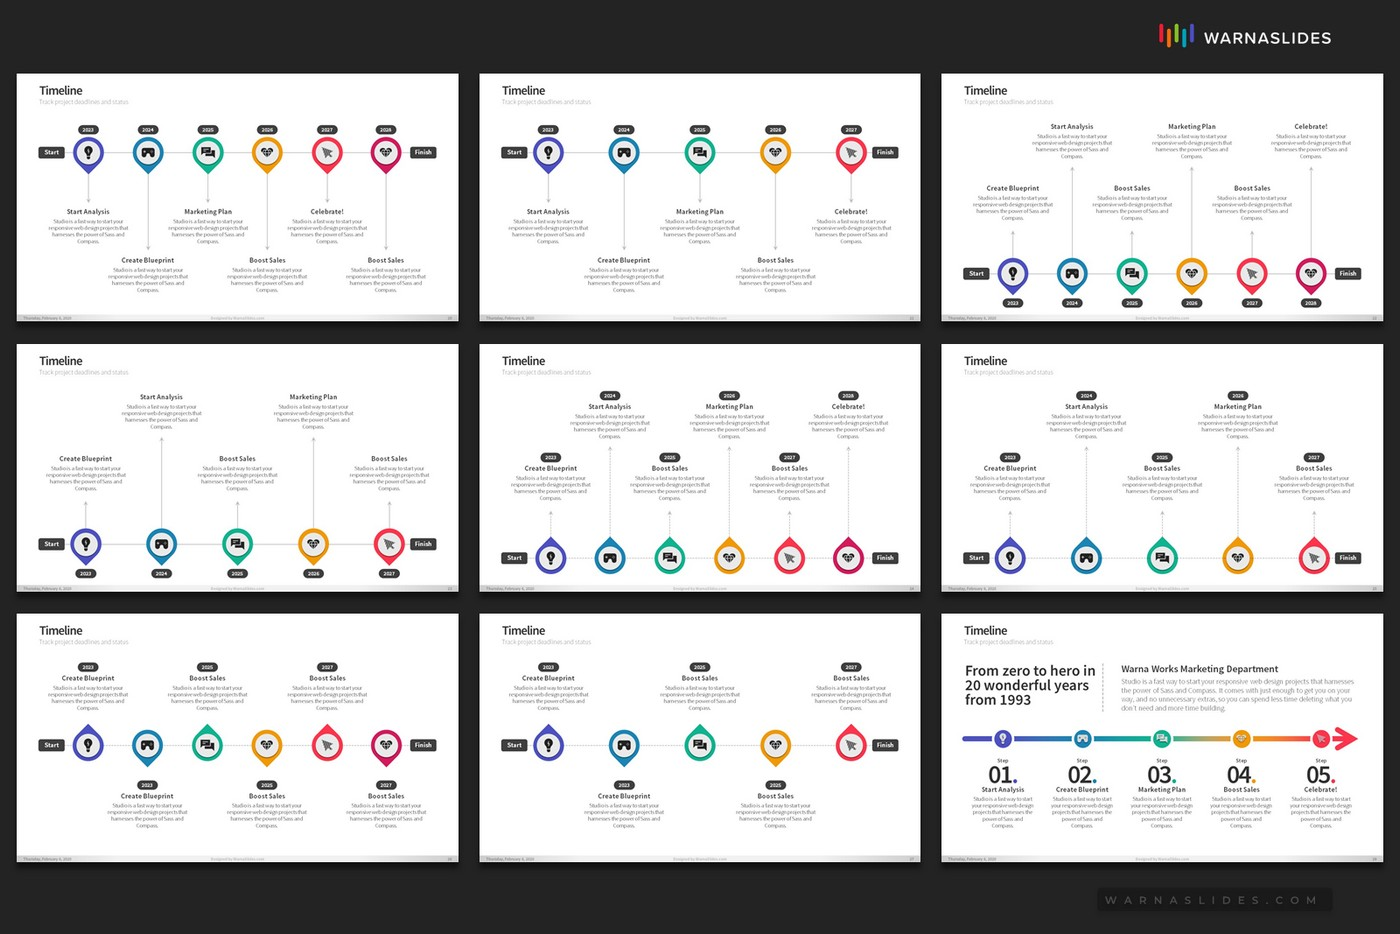 Project-Timeline-History-PowerPoint-Template-for-Business-Pitch-Deck-Professional-Creative-PowerPoint-Icons-008